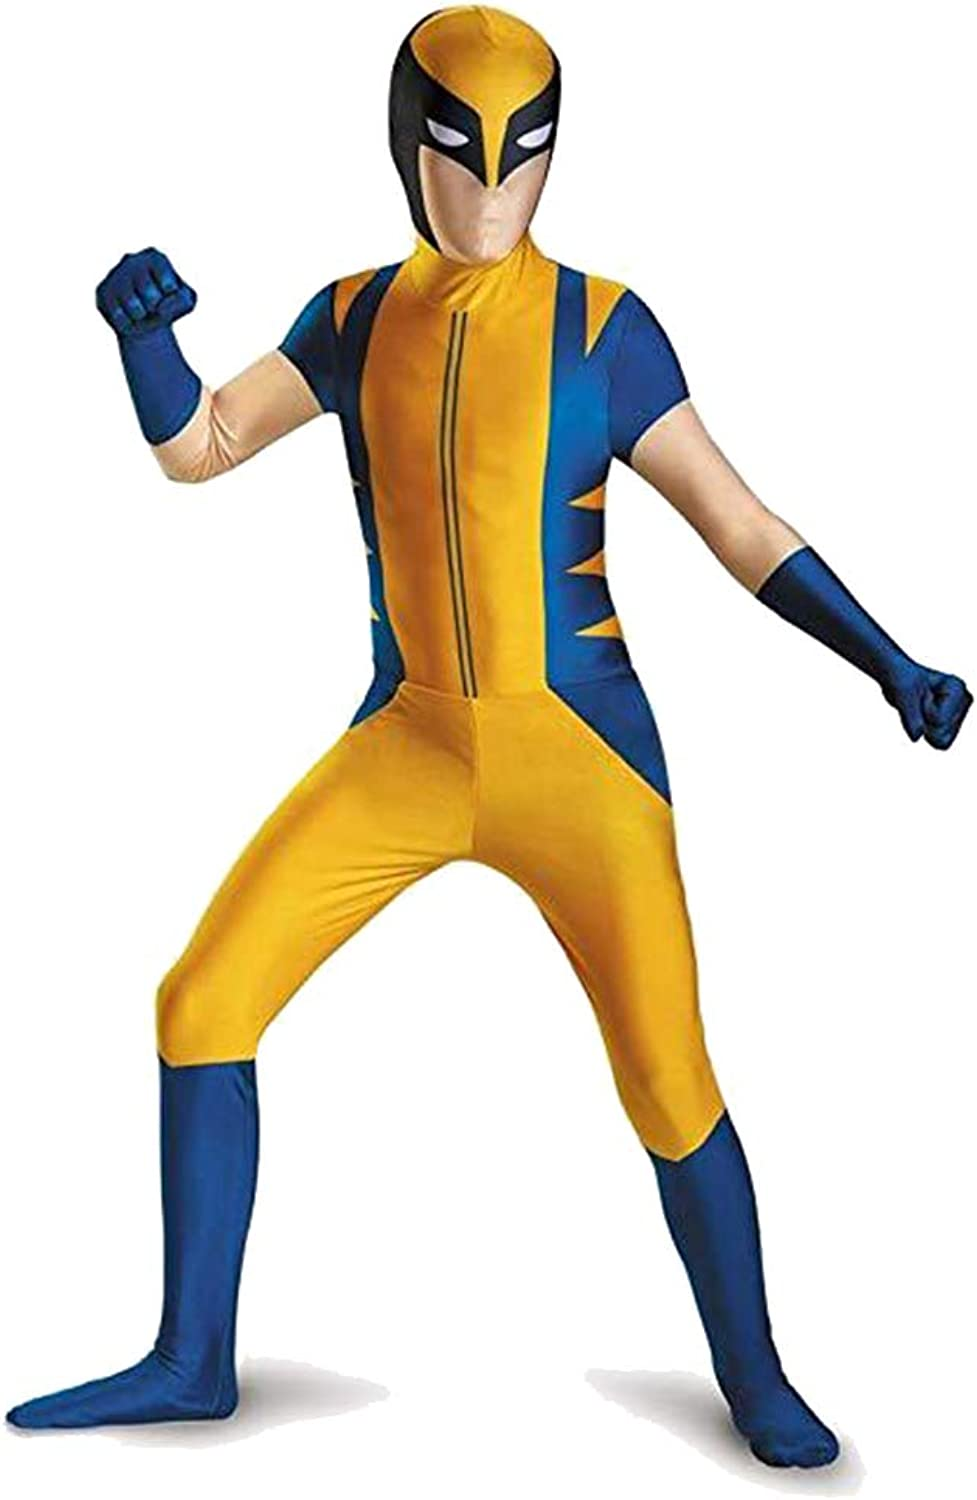 SDKHIN Wolverine Siamese Costume cosplay Halloween Costume Party Party Clothing,Yellowadult XL